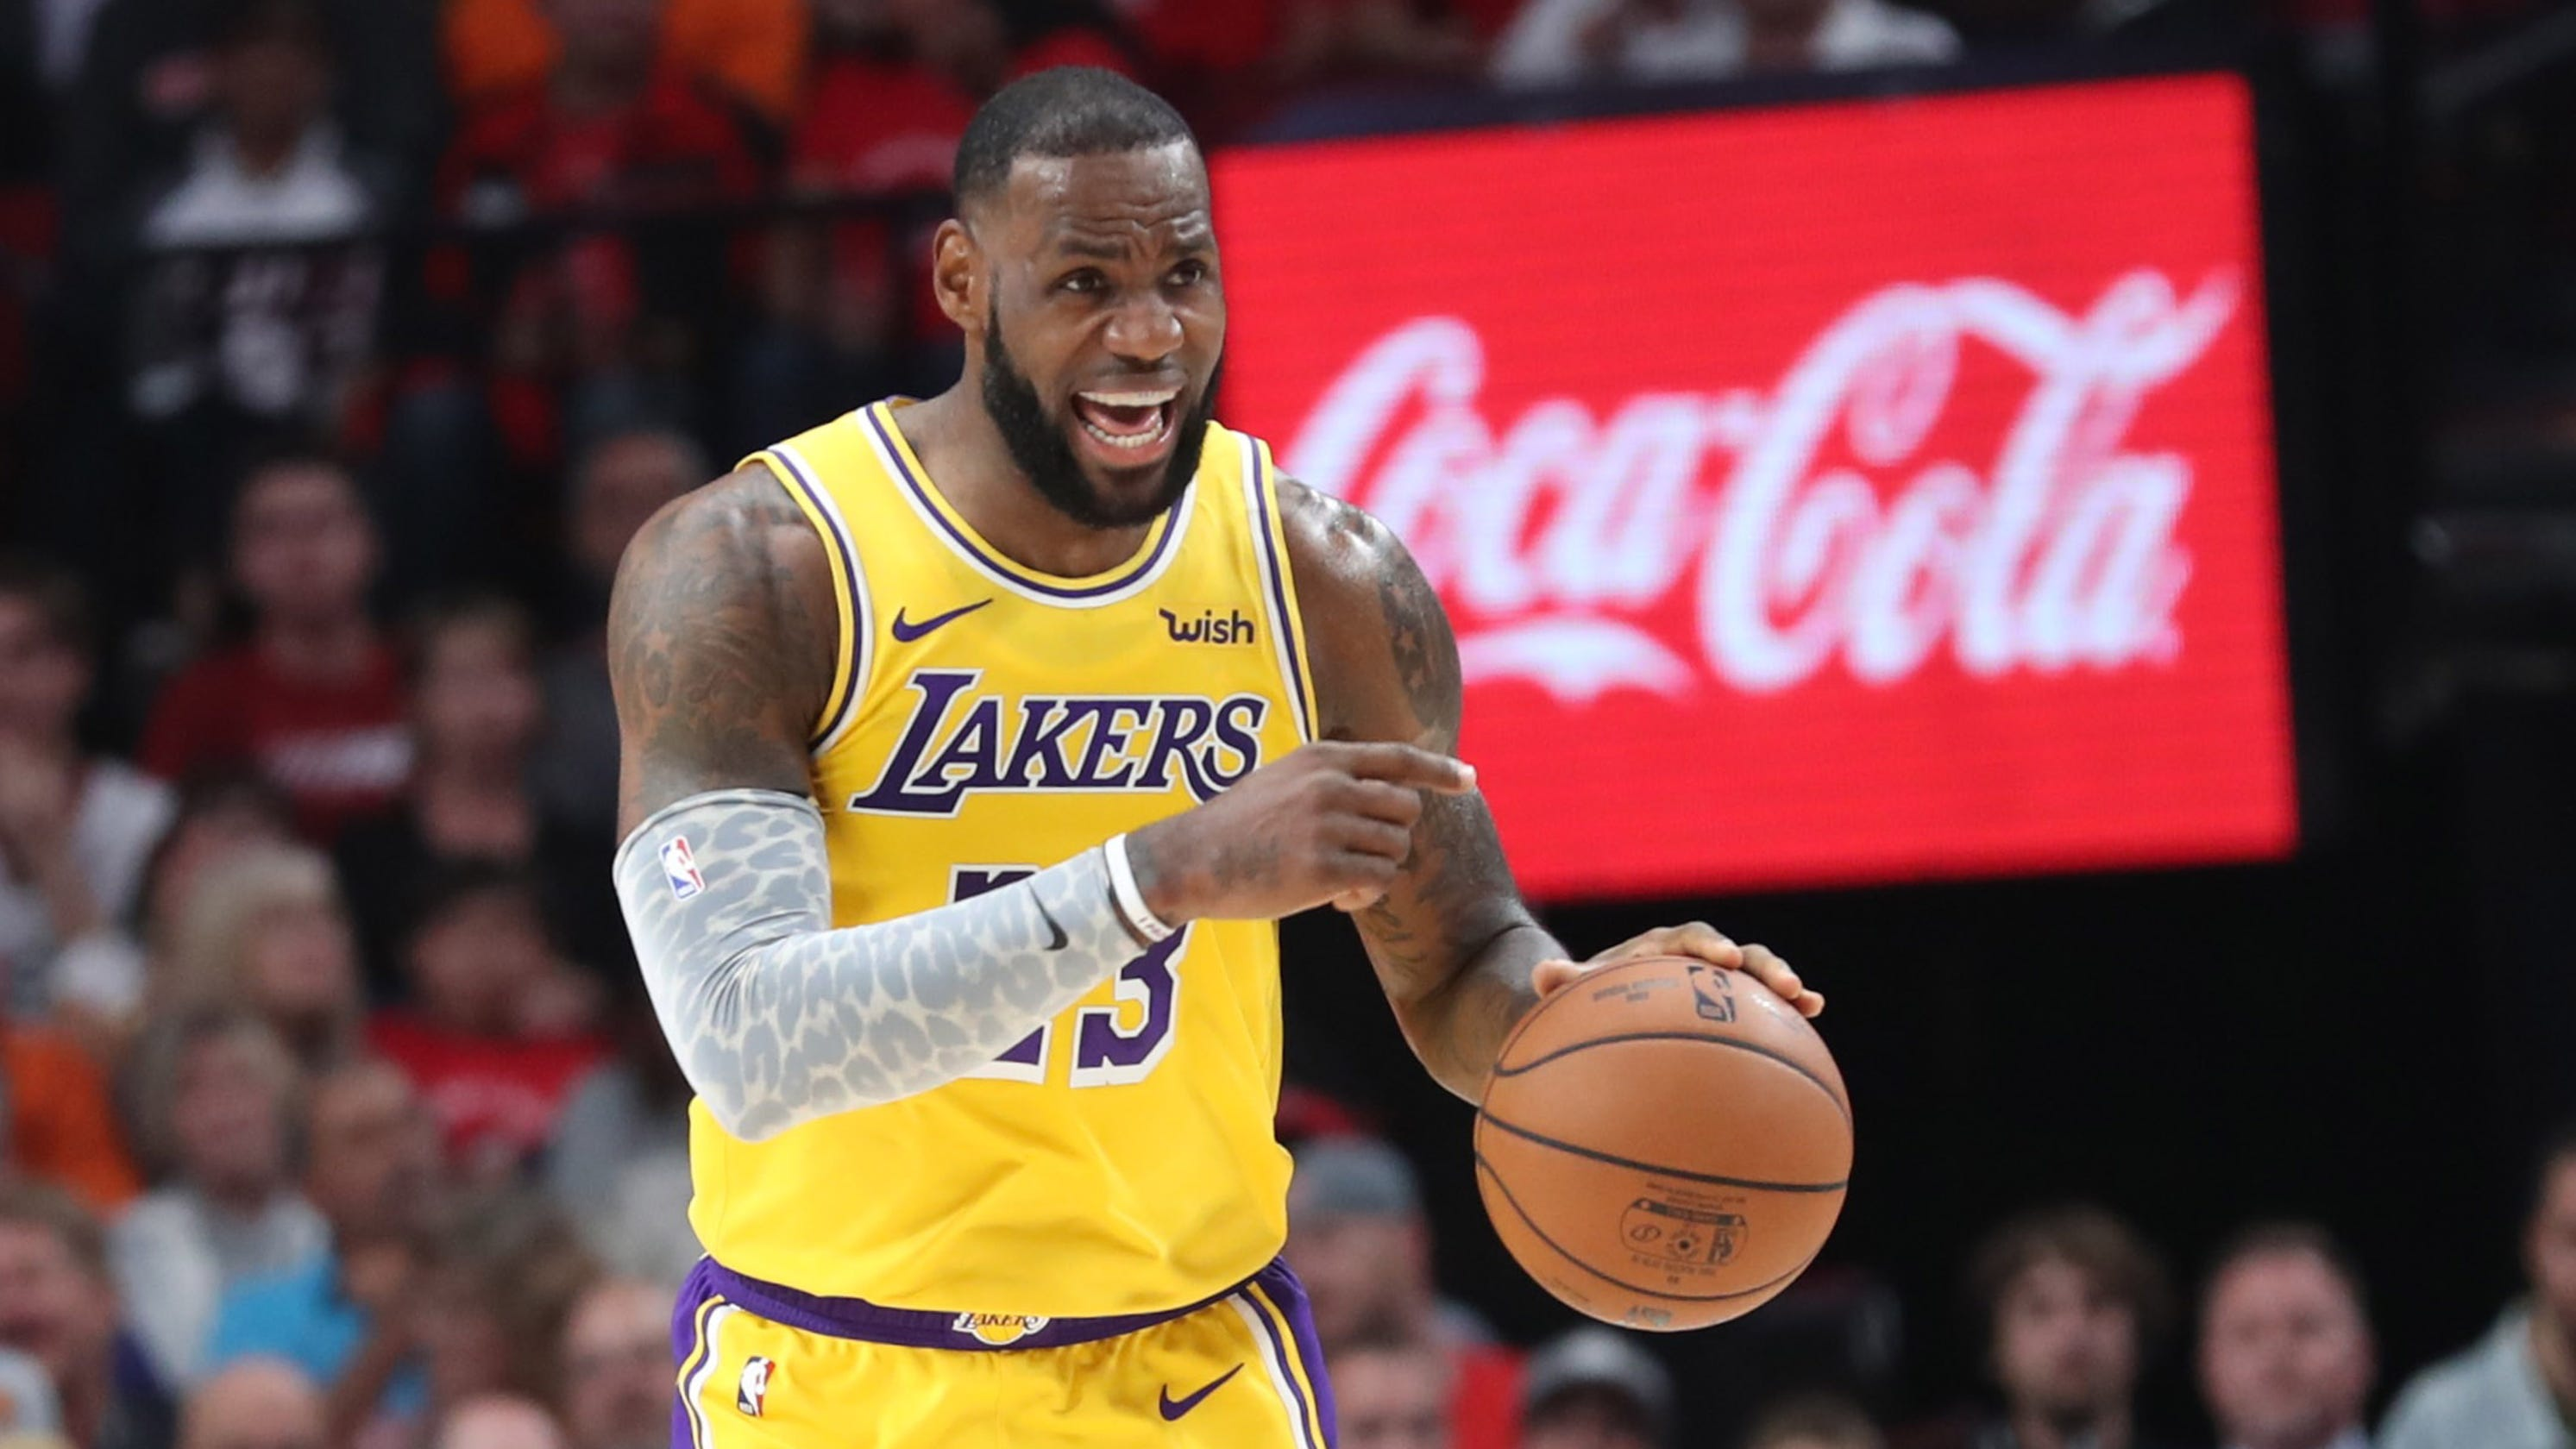 LeBron James  Lakers  return to Showtime won t be short and sweet 7bc25355e